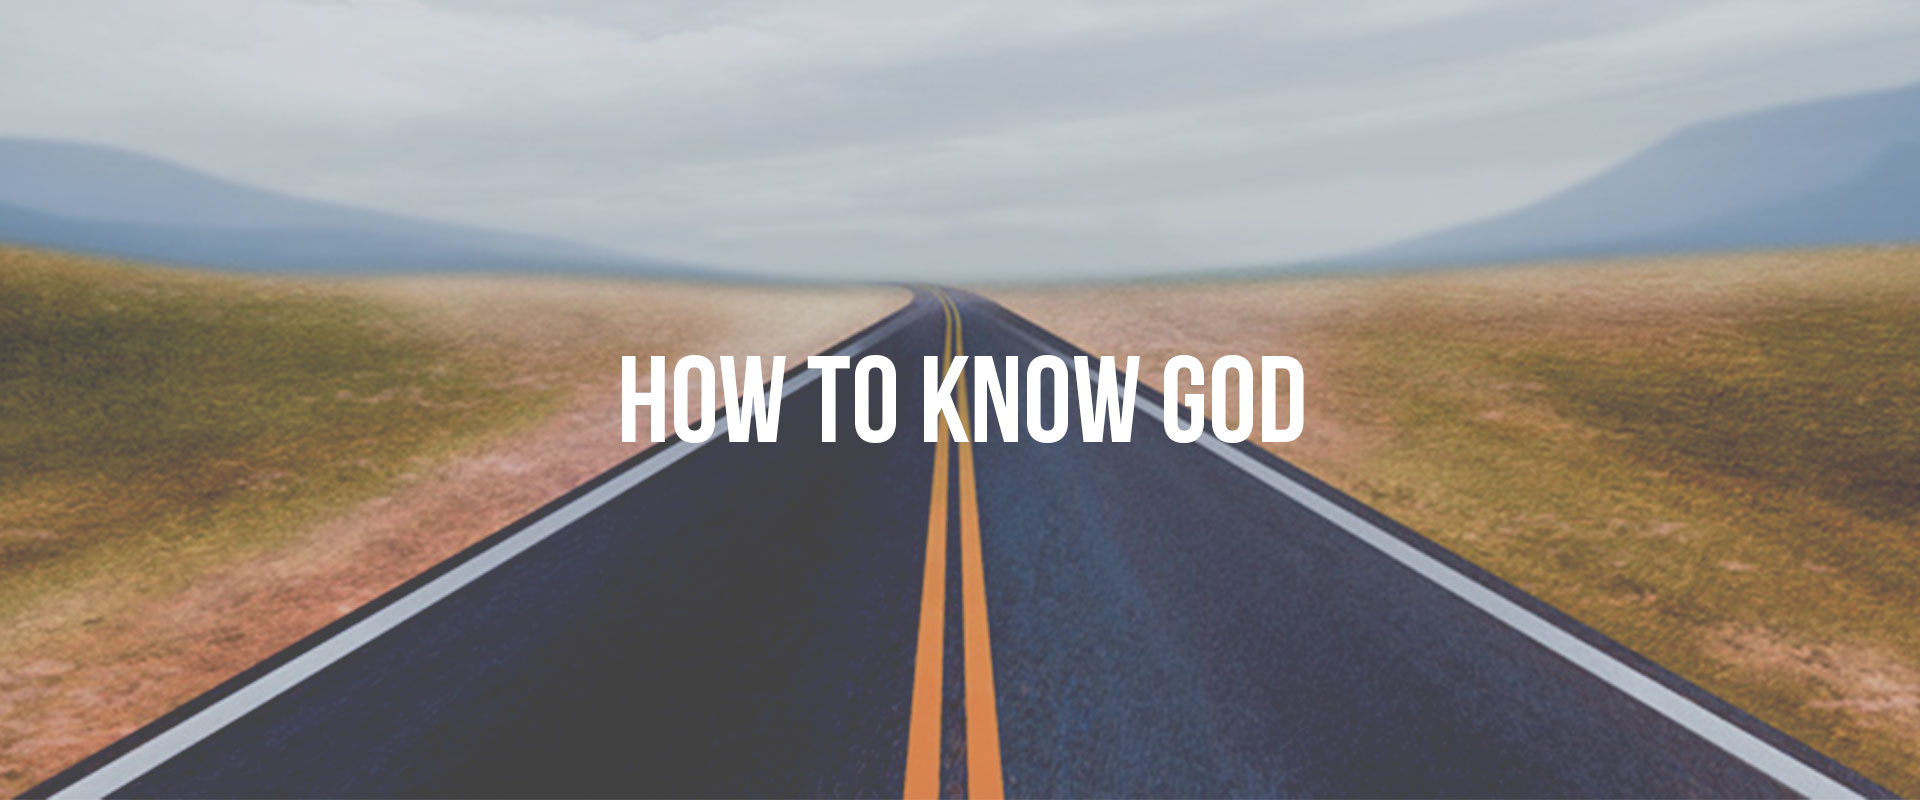 how-to-know-god-header